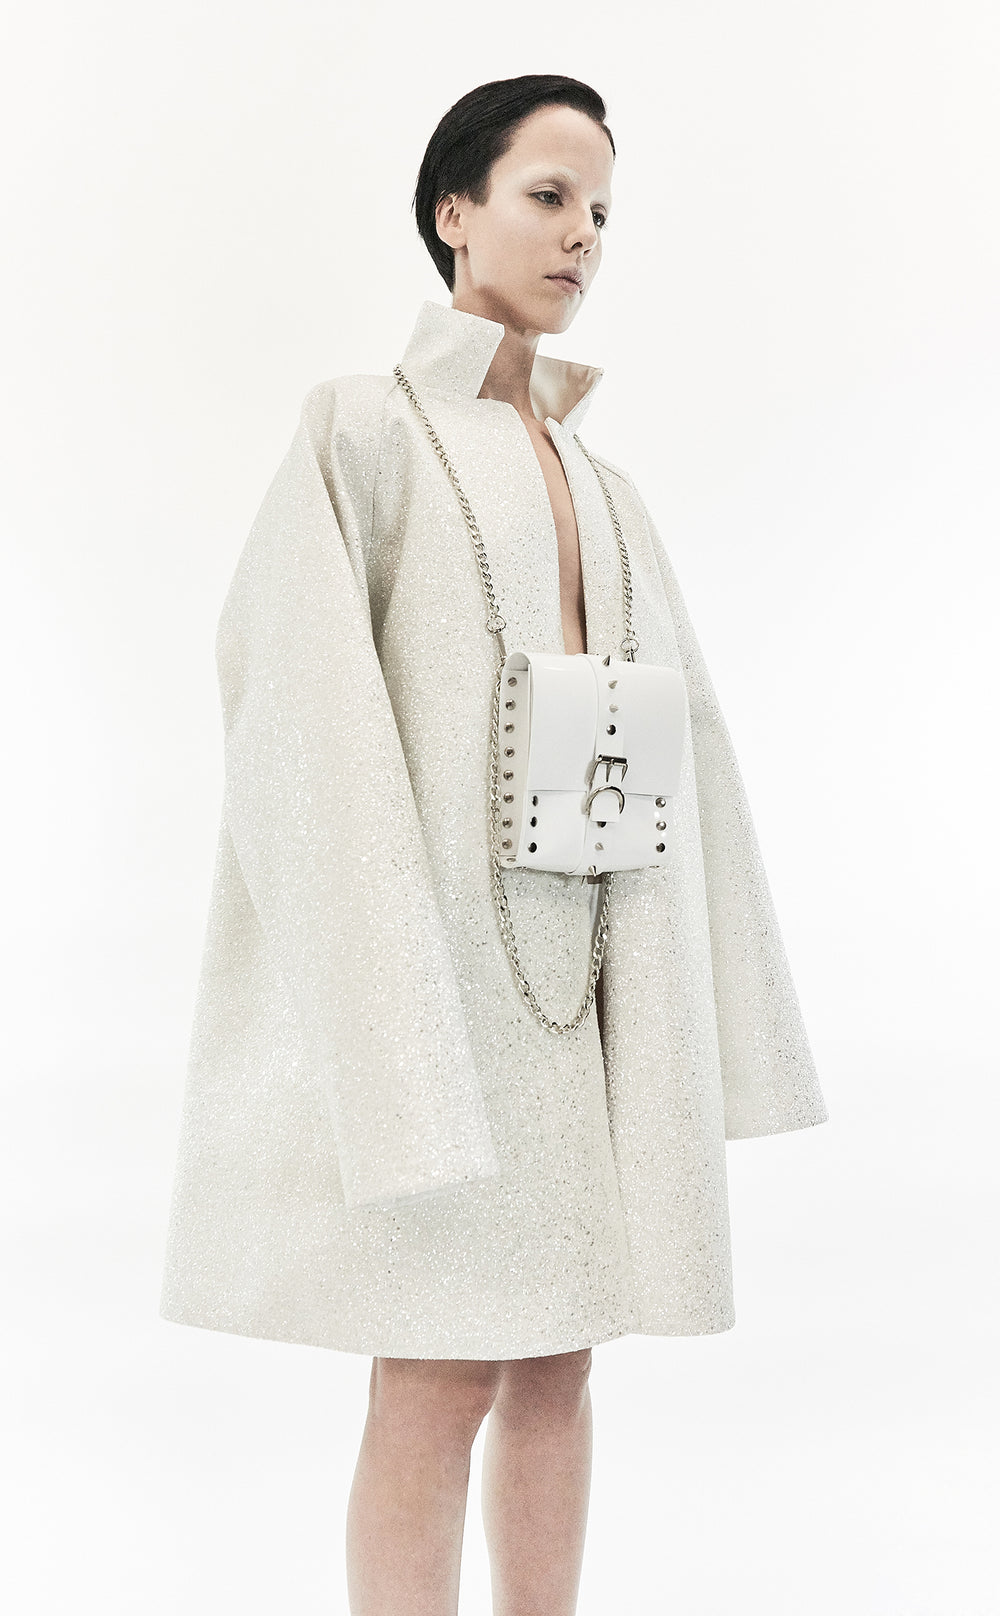 Jivomir Domoustchiev glitter luxury coat made in London hand crafted